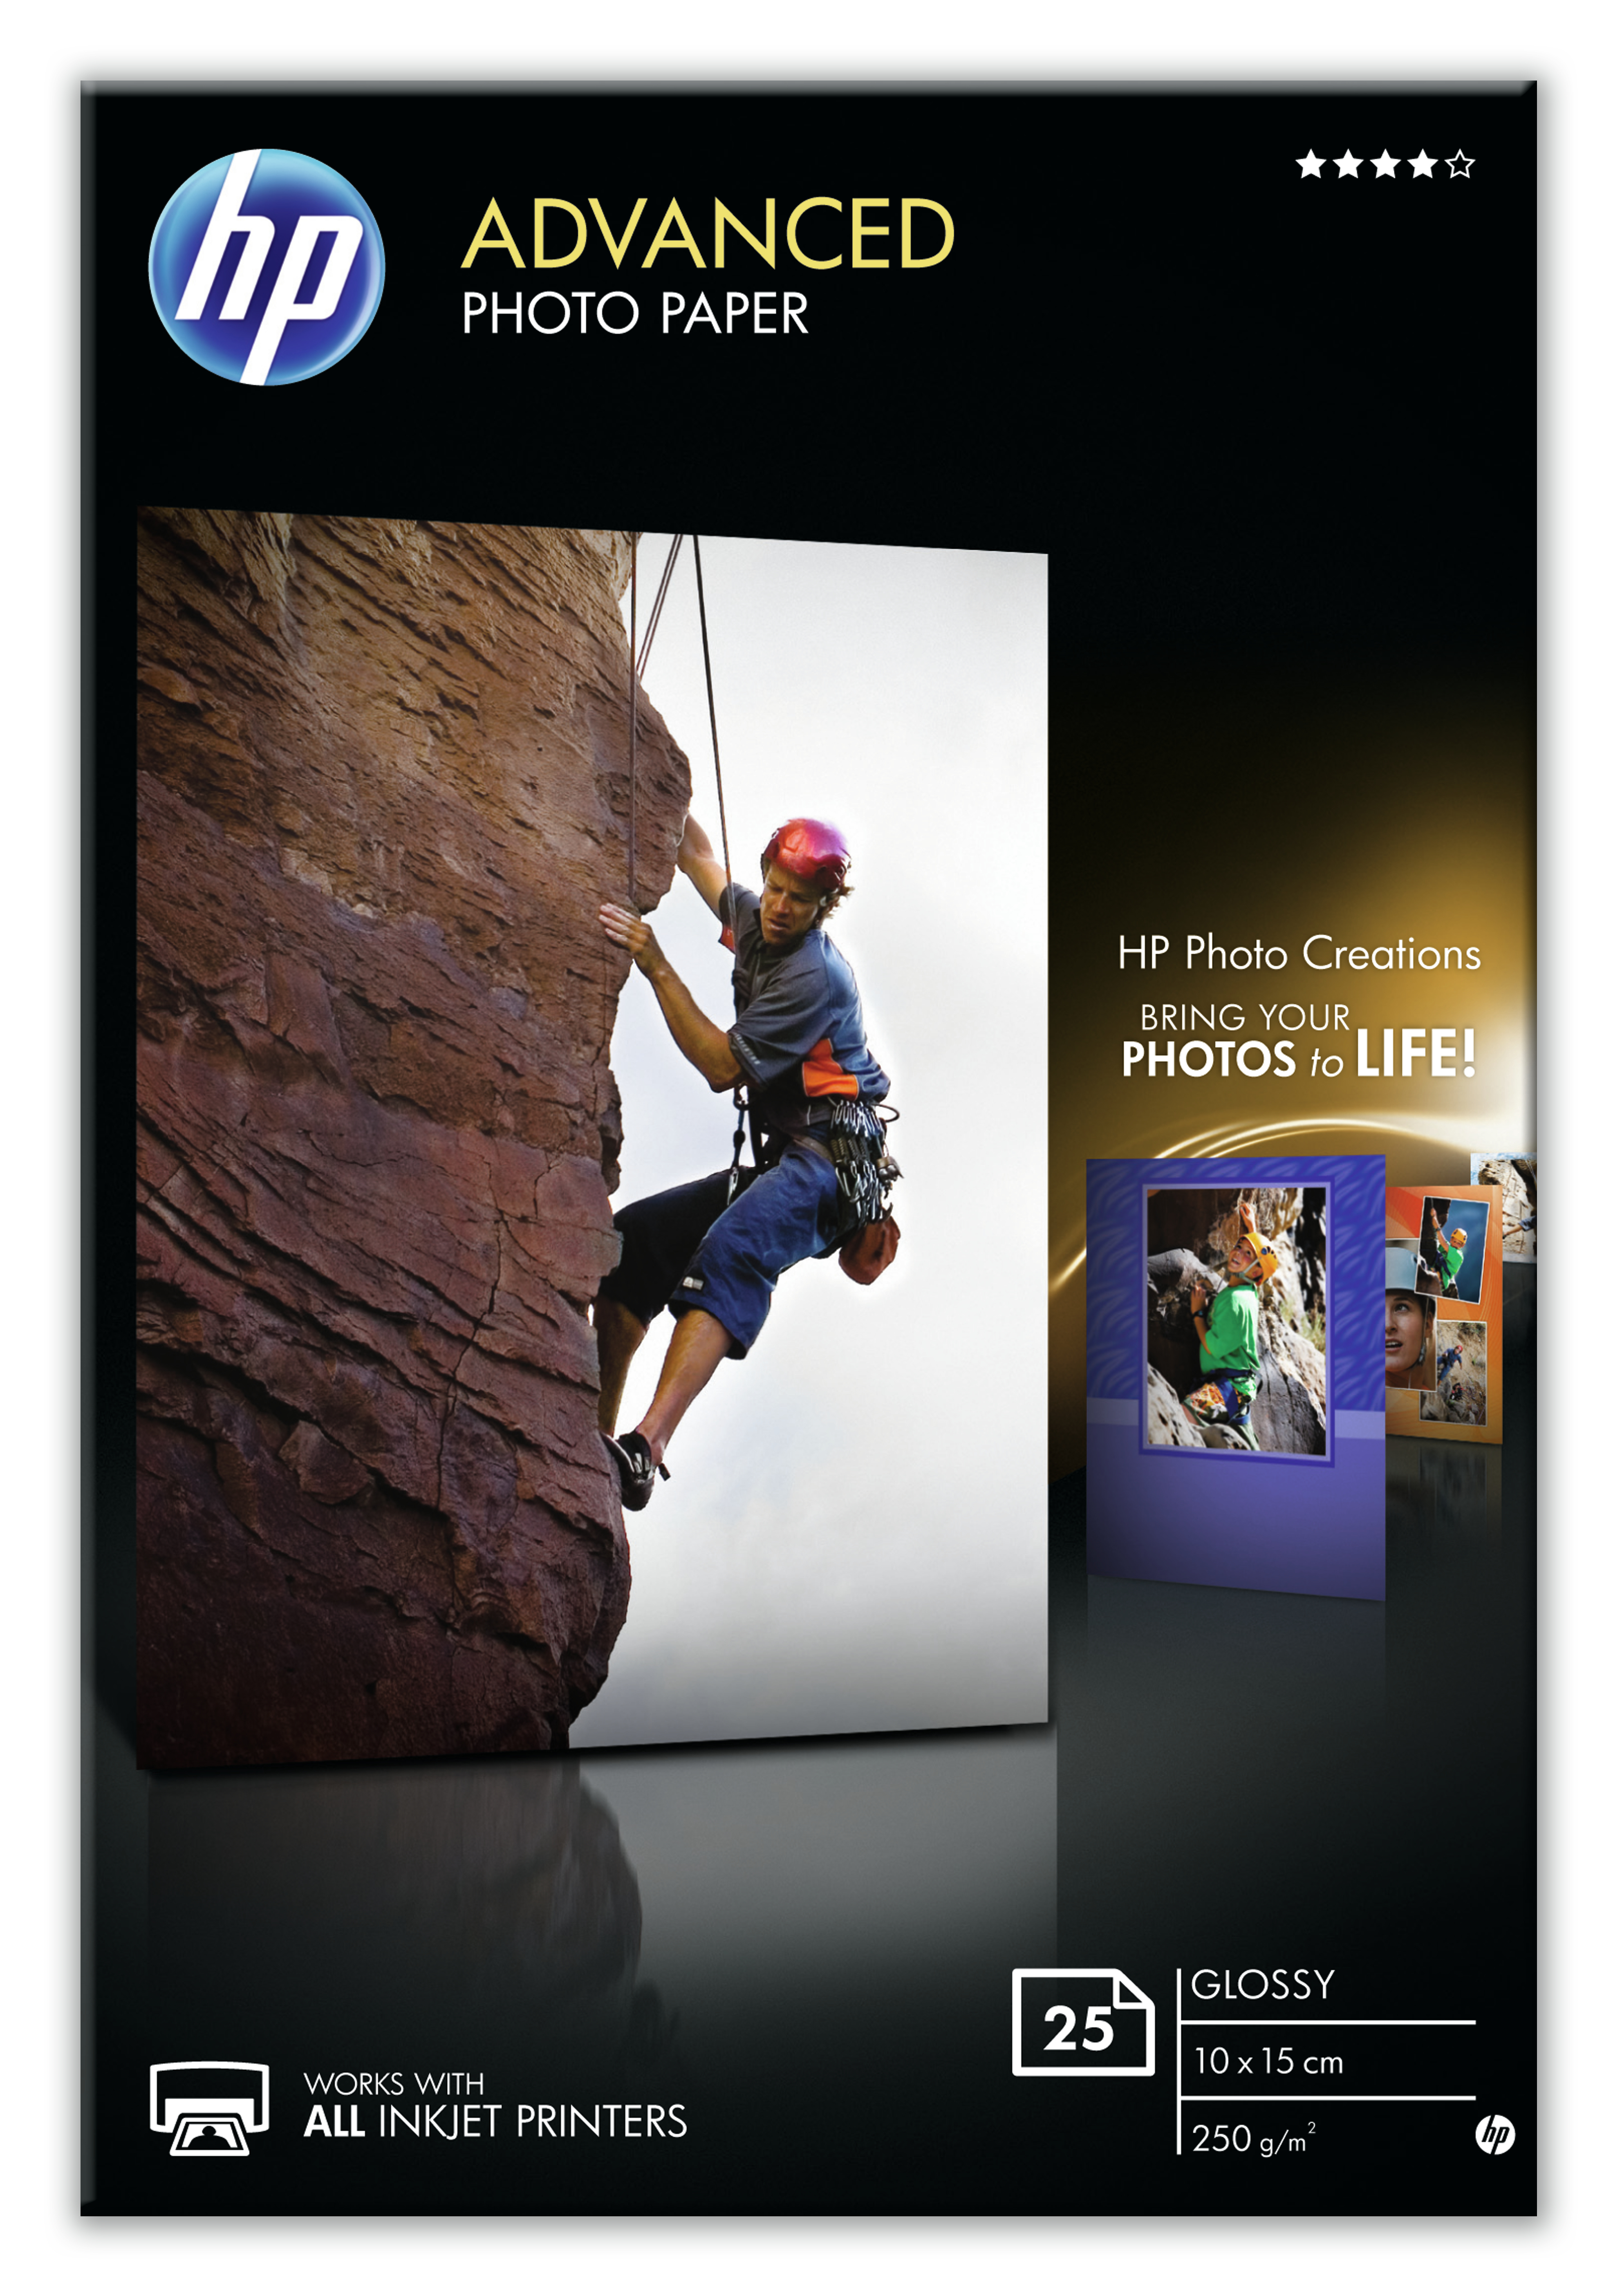 Hpq8691a       Hp Advanced Glossy Photo Paper Hpq8691a                                                     - UF01